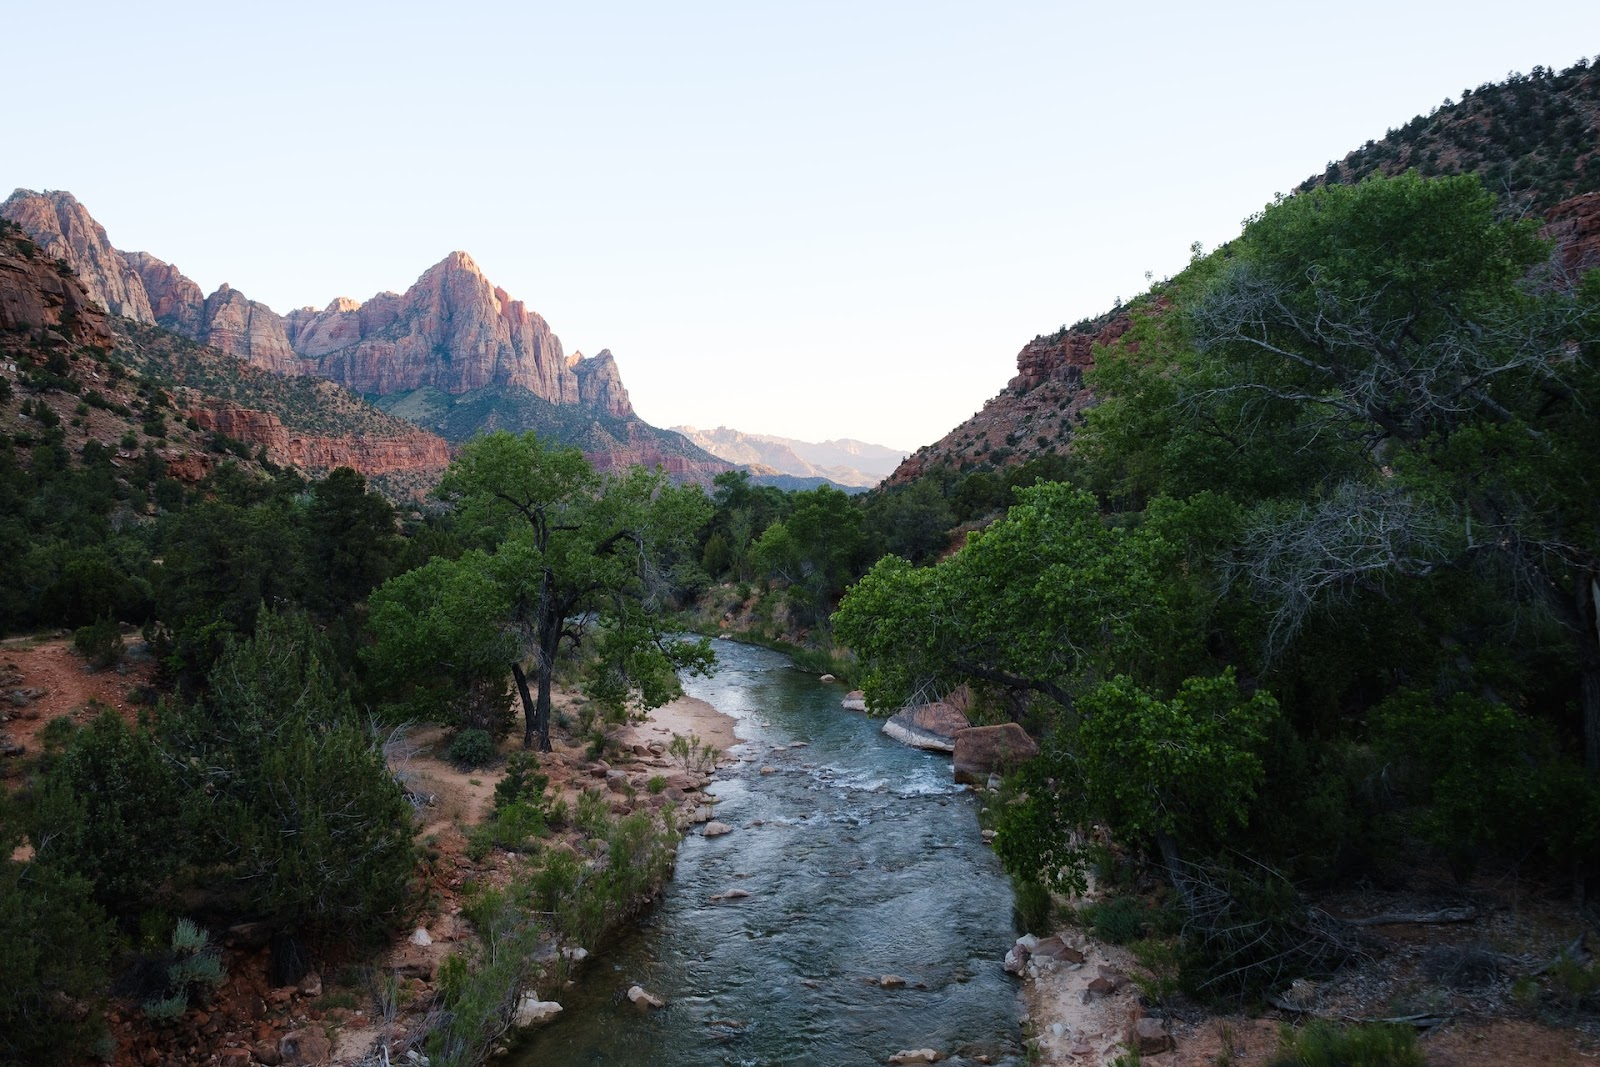 Zion national park in Southern Utah